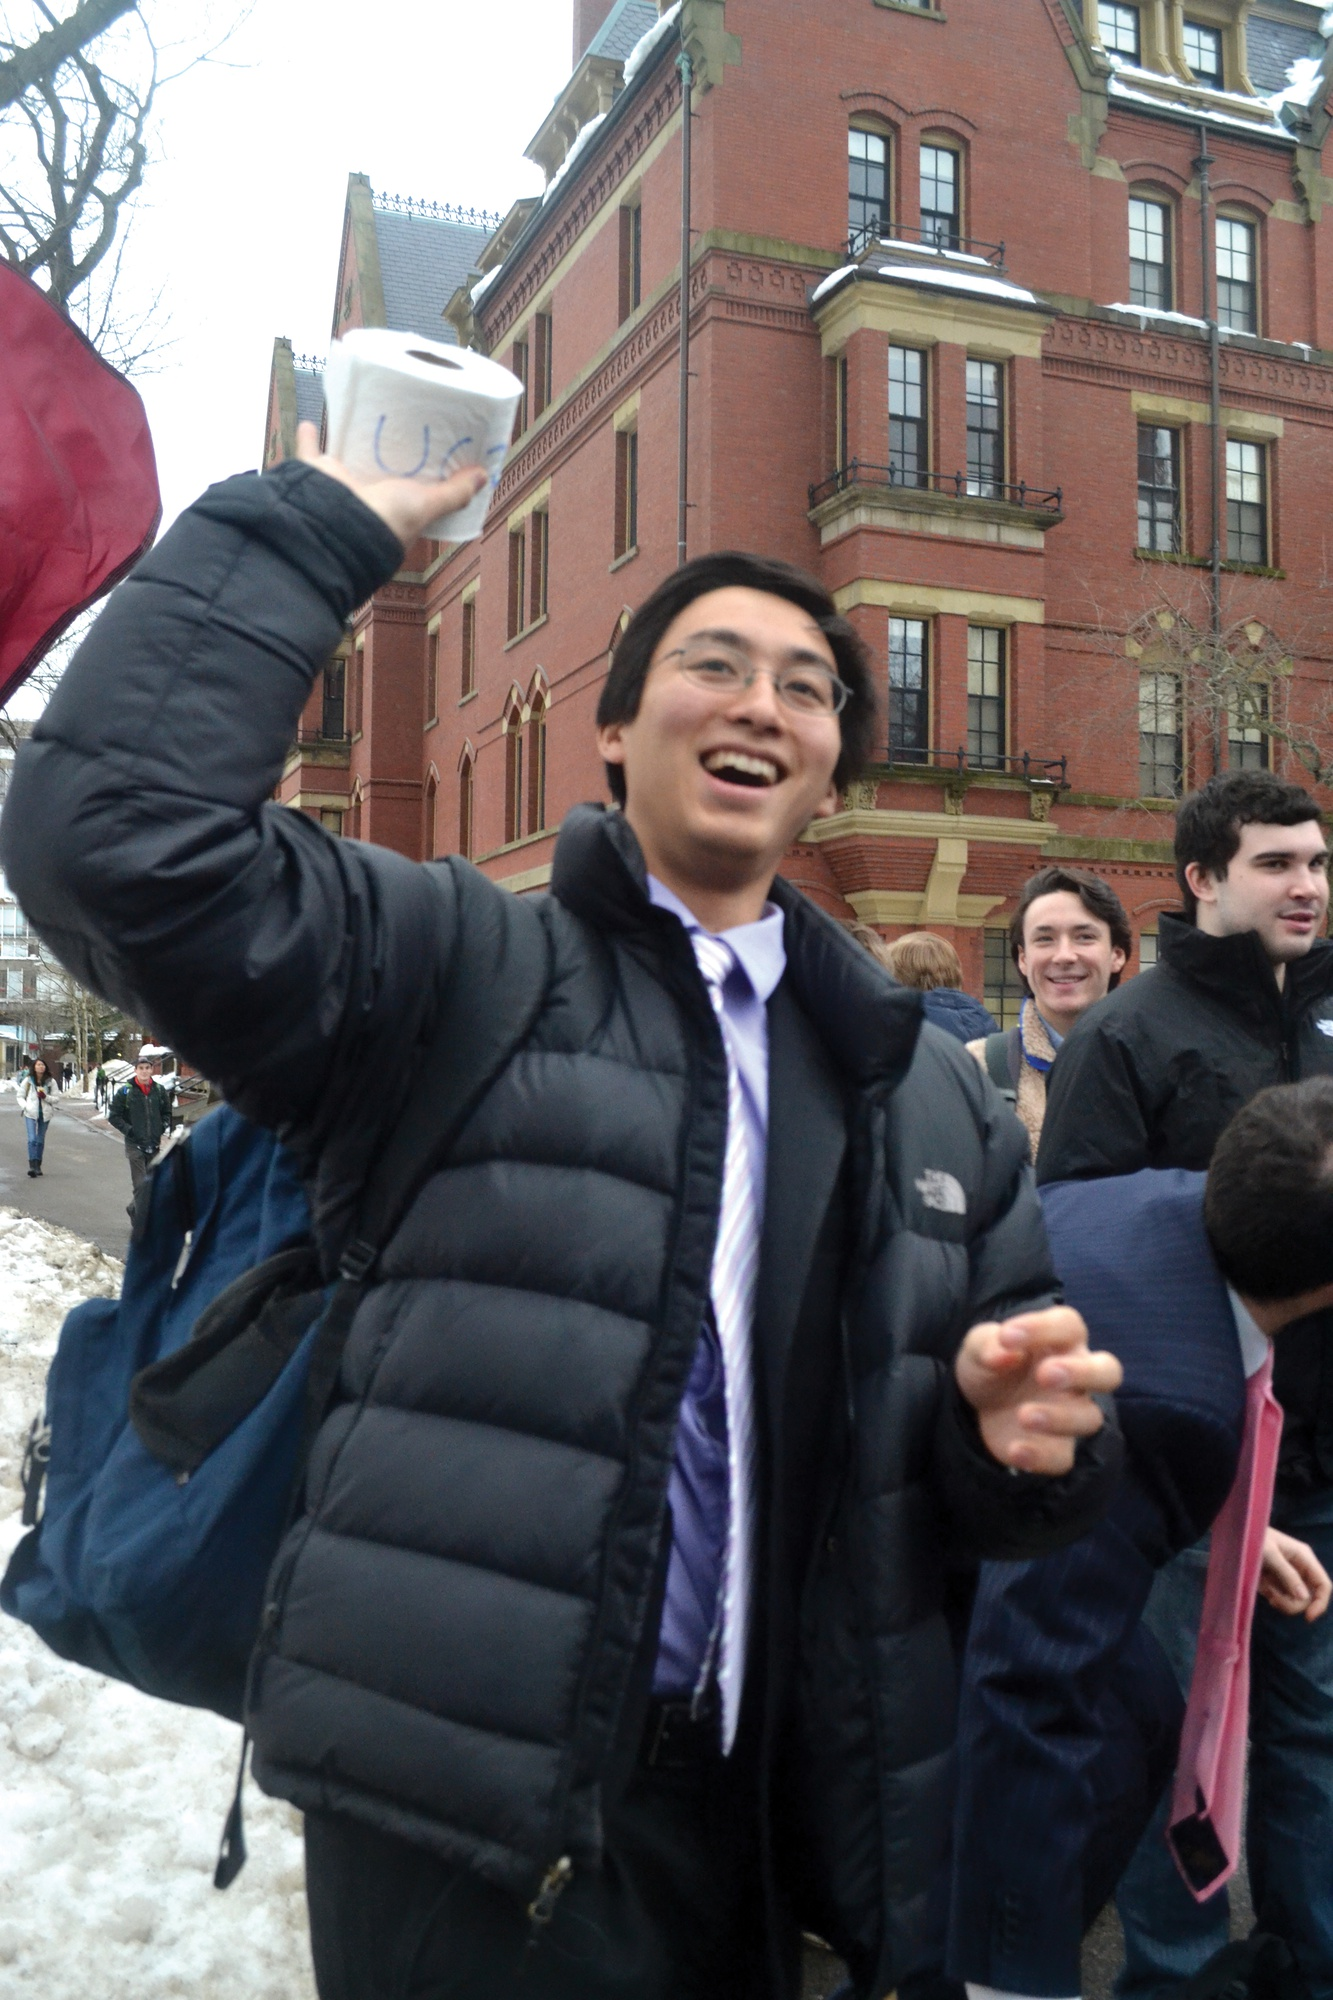 Undergraduate Council Vice President Sietse K. Goffard '15 throws toilet paper to a crowd of students during an organized rally to ask the university for increased funding.